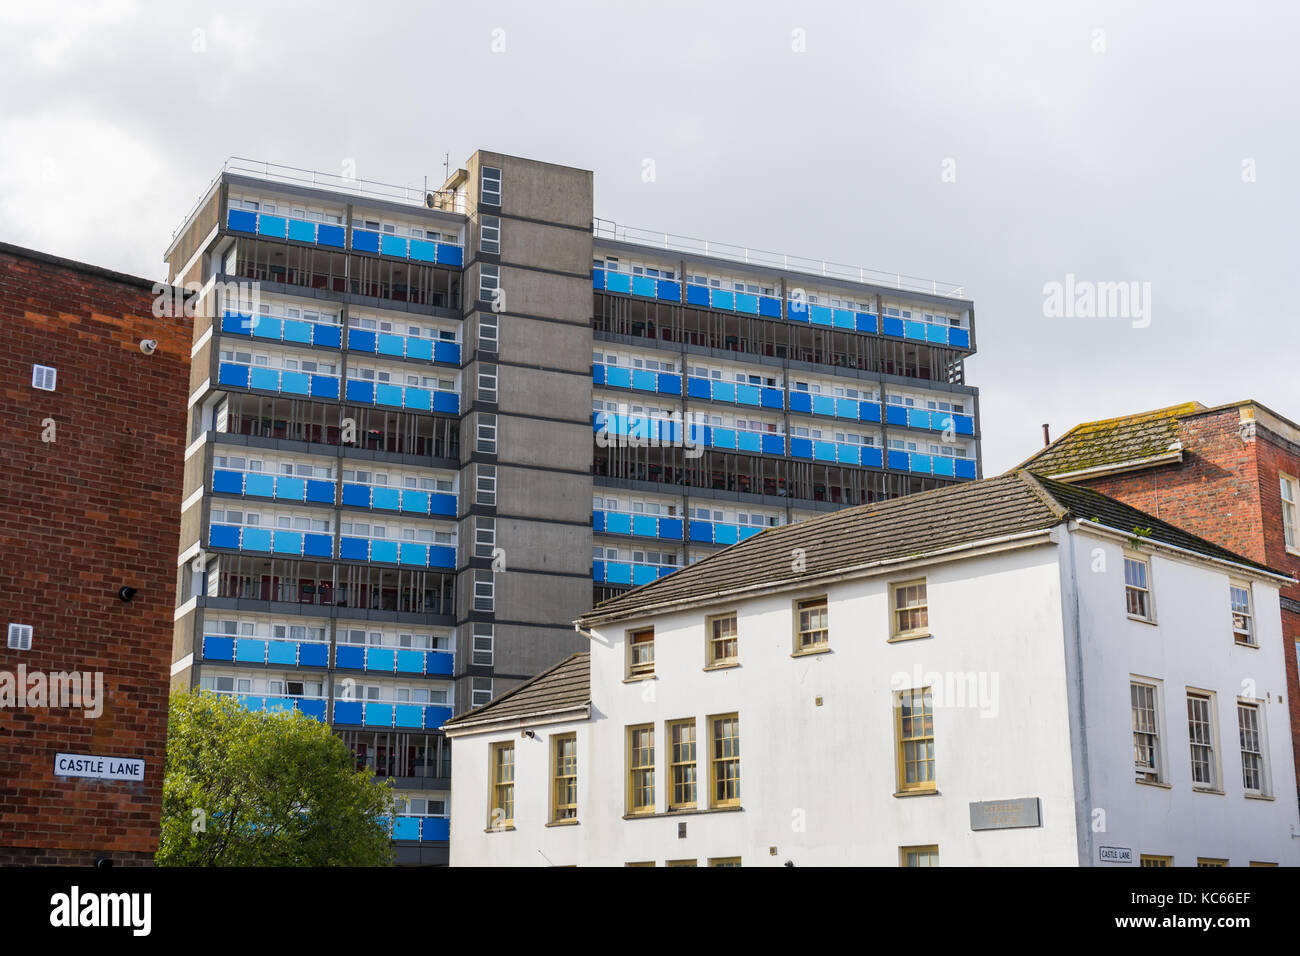 Contrasting architecture along Castle Lane in 2017, Southampton, England, UK - Stock Image